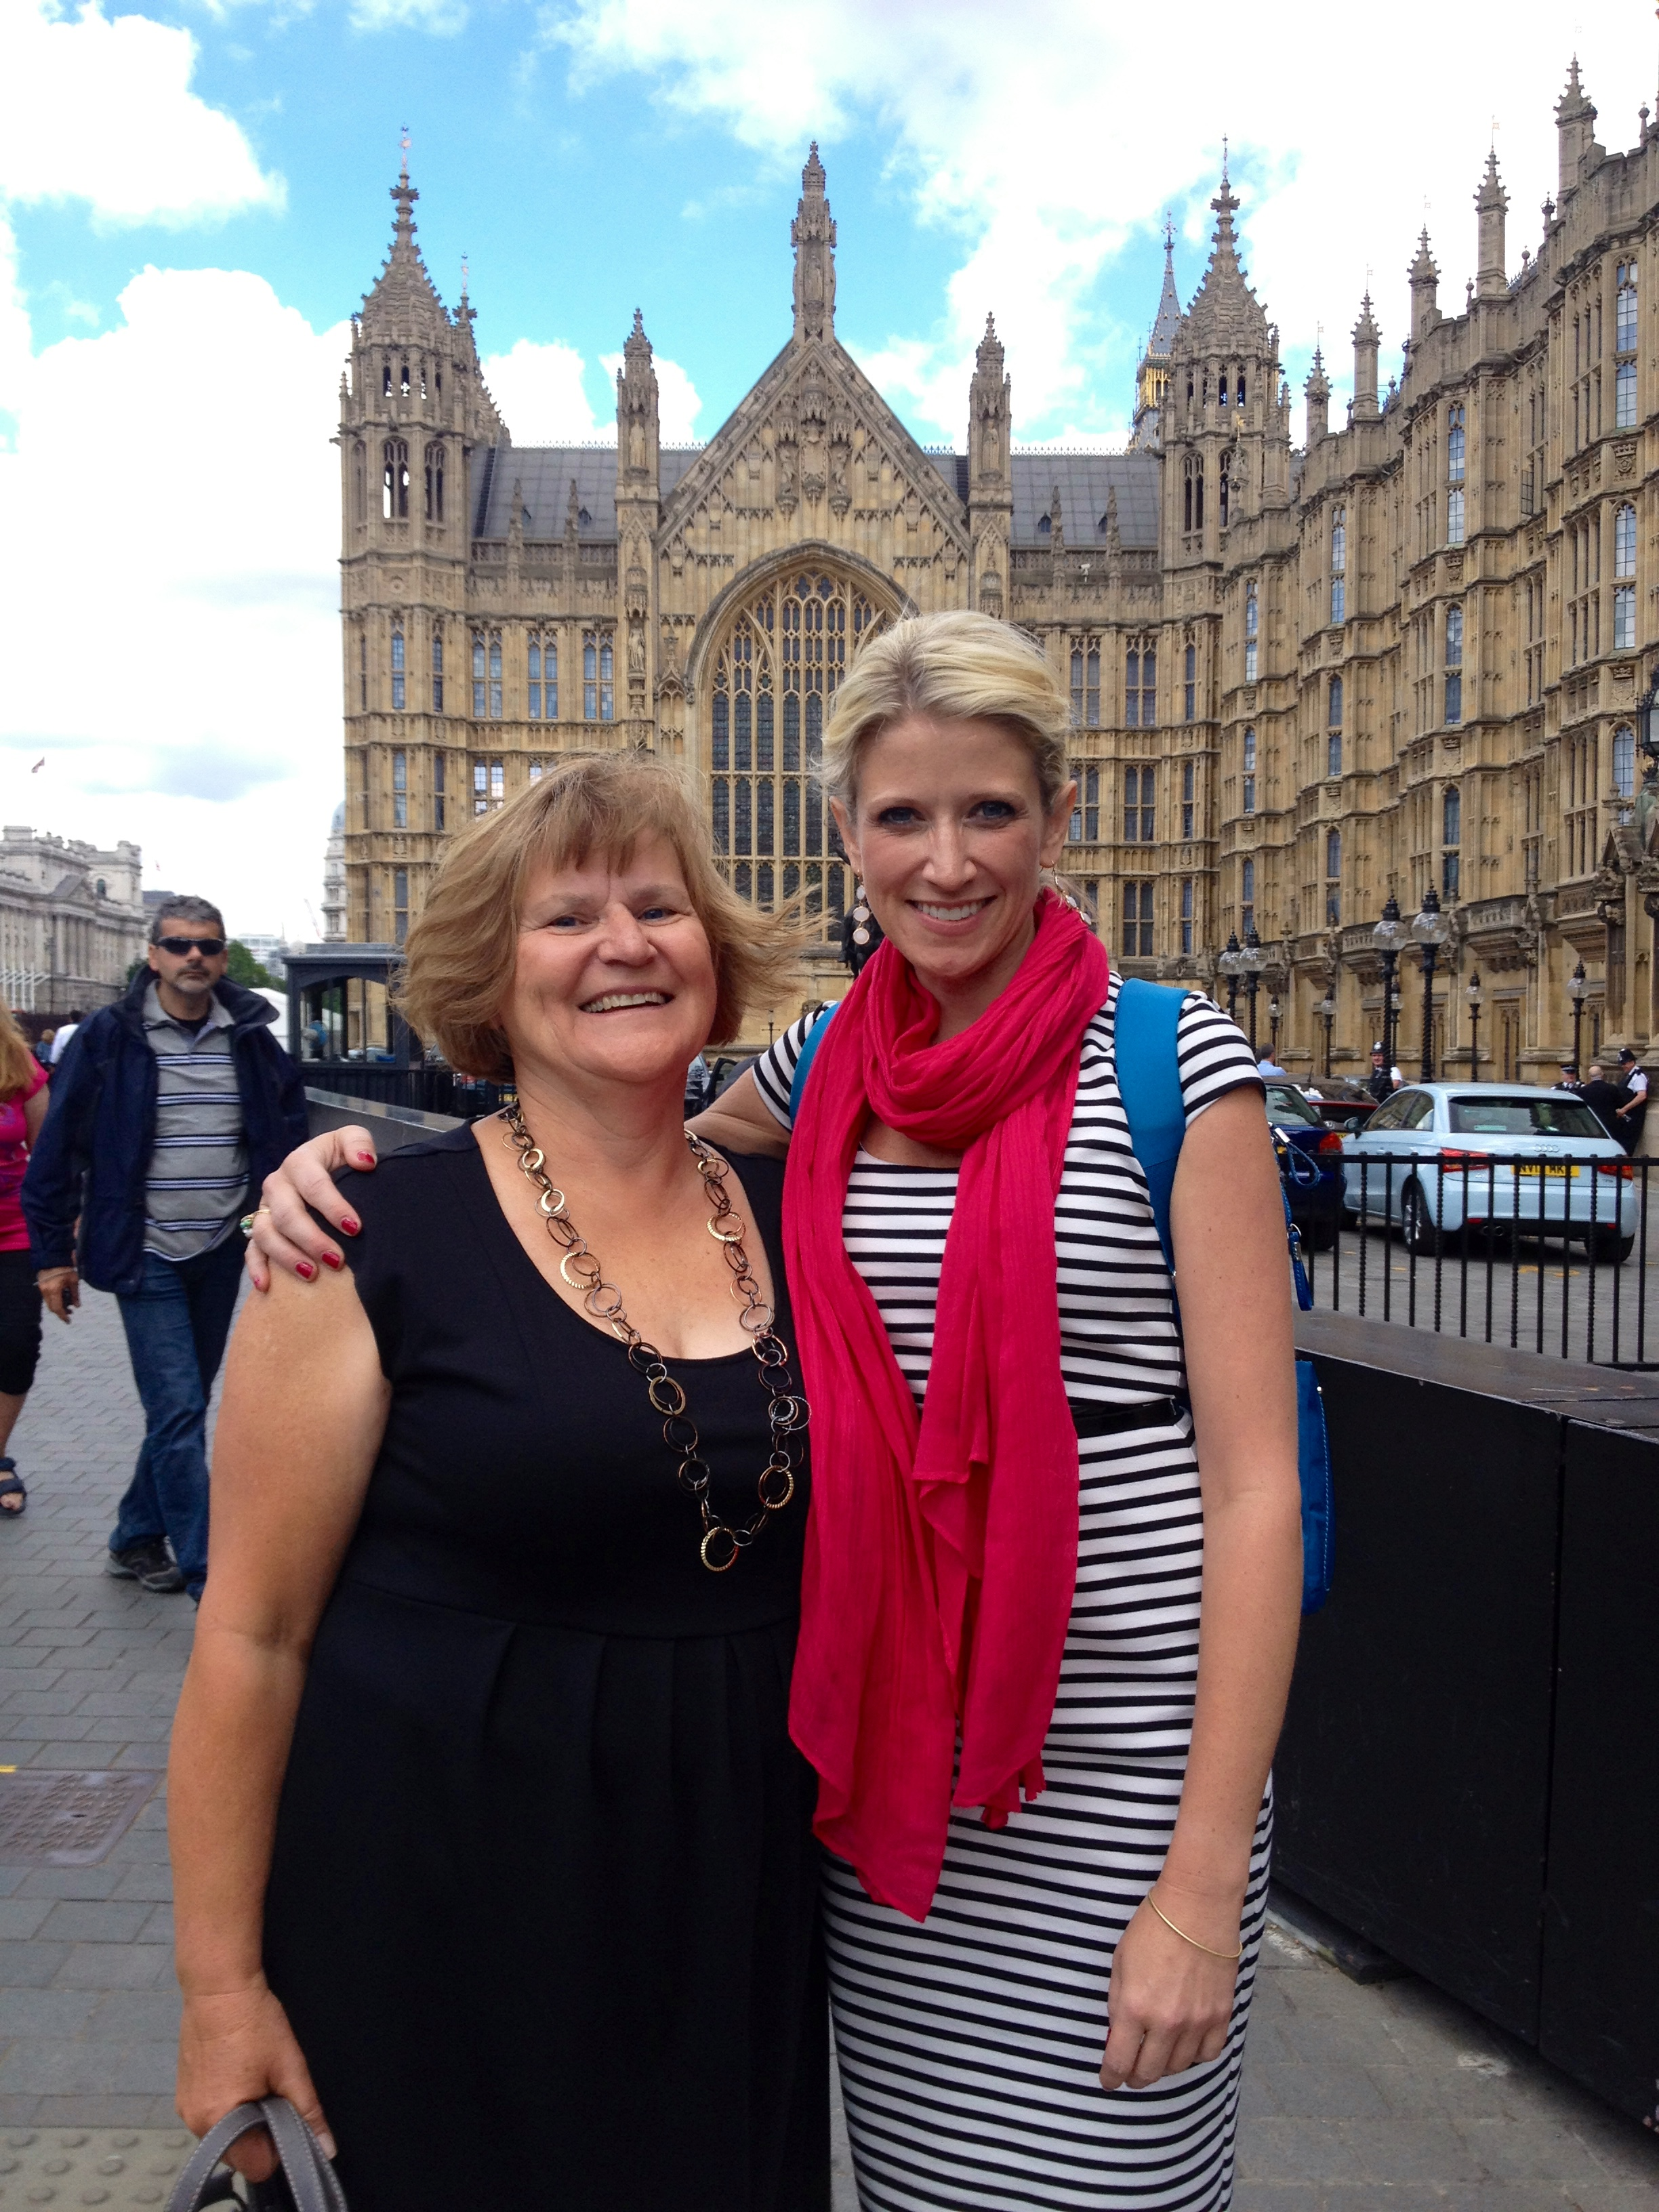 Jamie and her mom Melanie in 2014, working at Parliament in London, UK